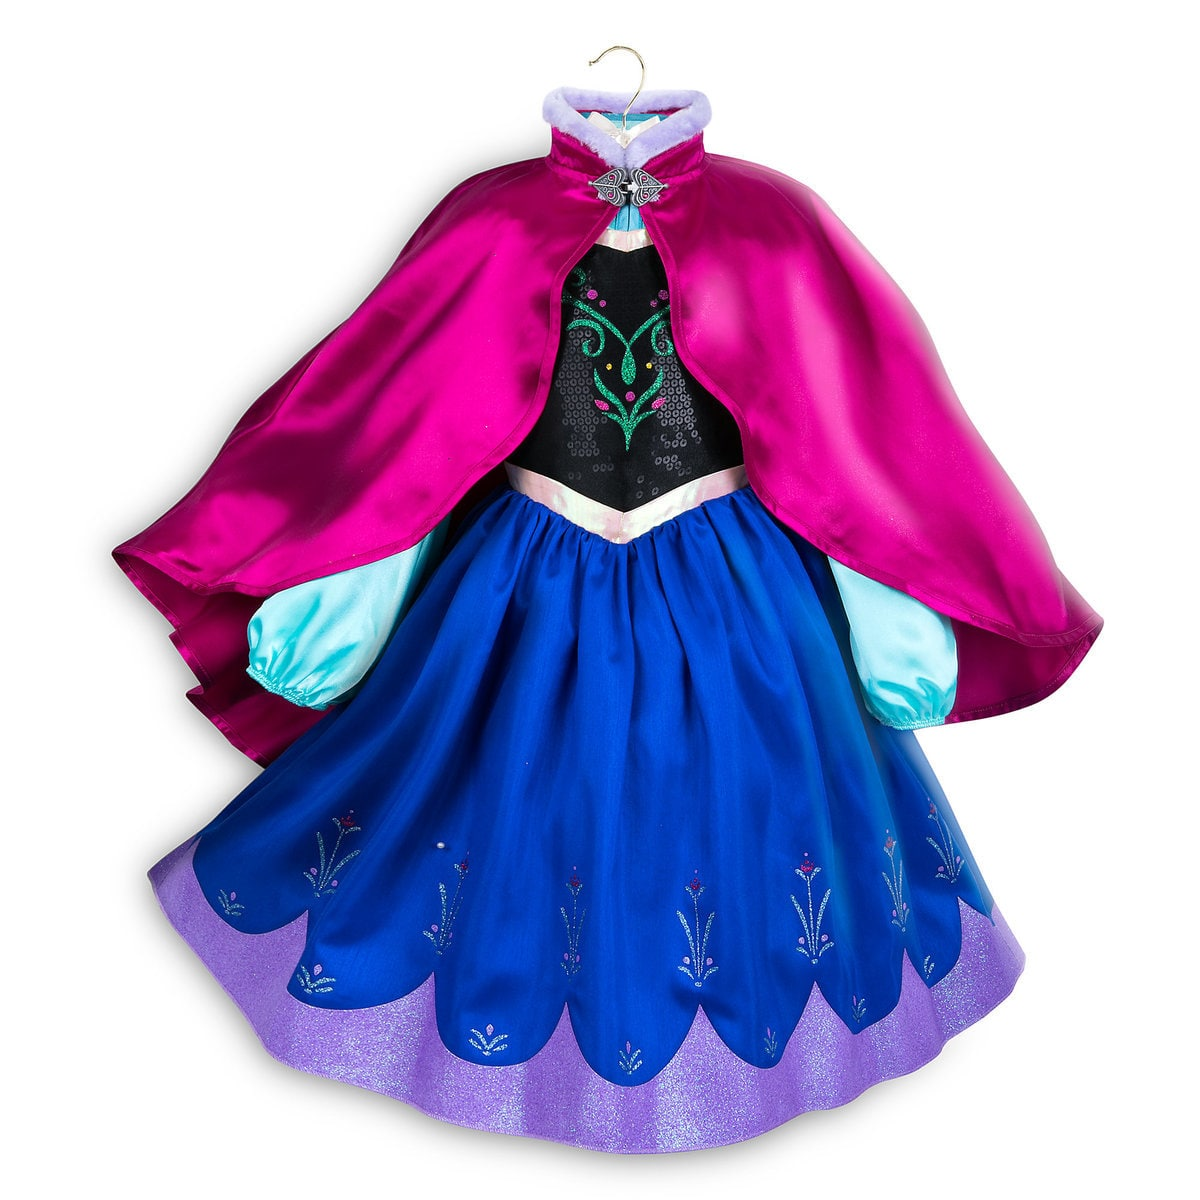 Anna costume for kids from Disney's Frozen movie | Top 25 Disney Gift Ideas for Toddlers featured by top US Disney blogger, Marcie and the Mouse